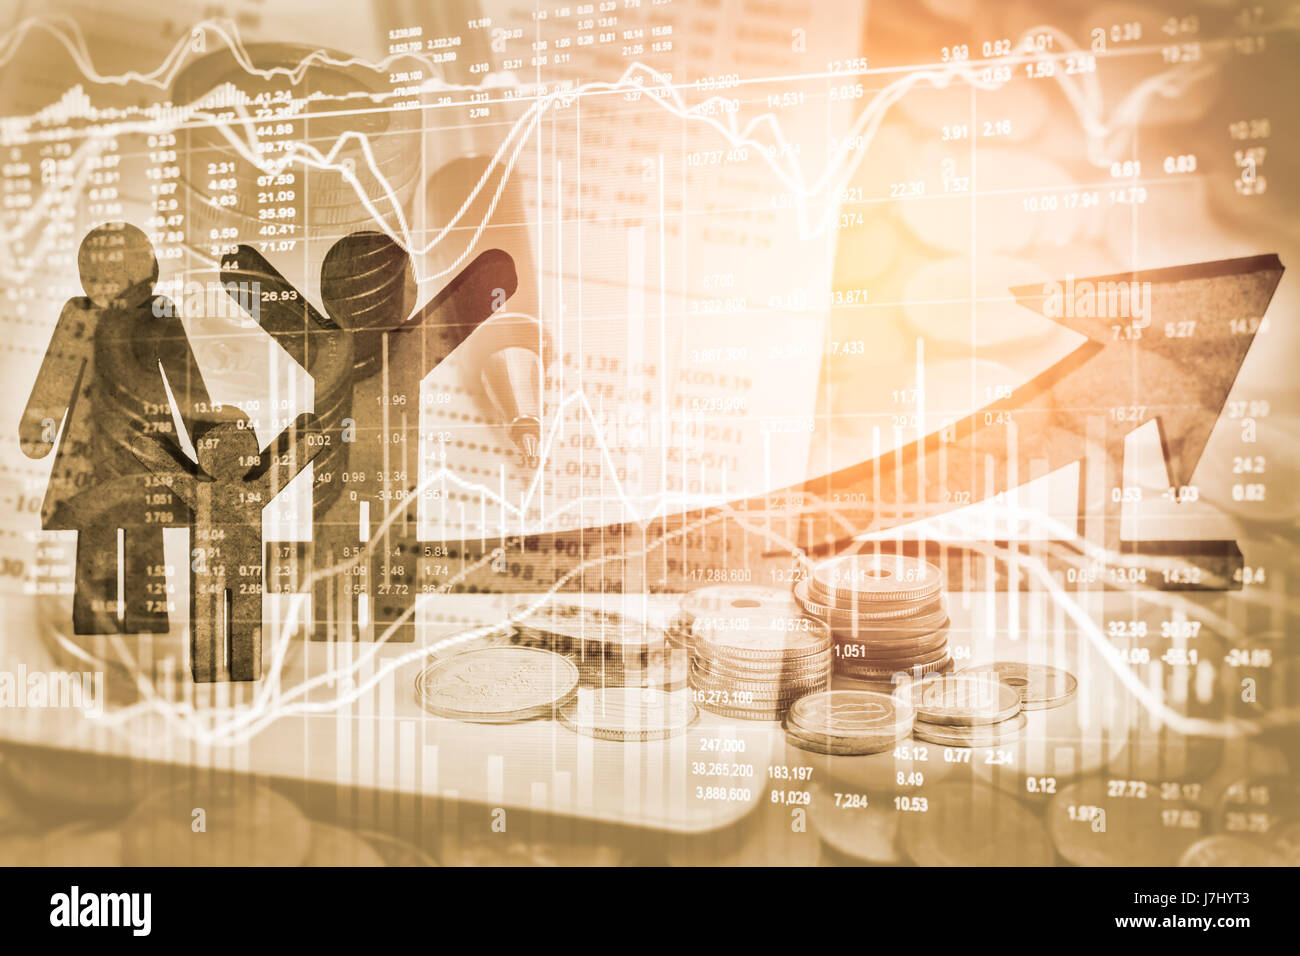 Double exposure business props on stock financial growth. Economy return earning concept. Stock market financial - Stock Image